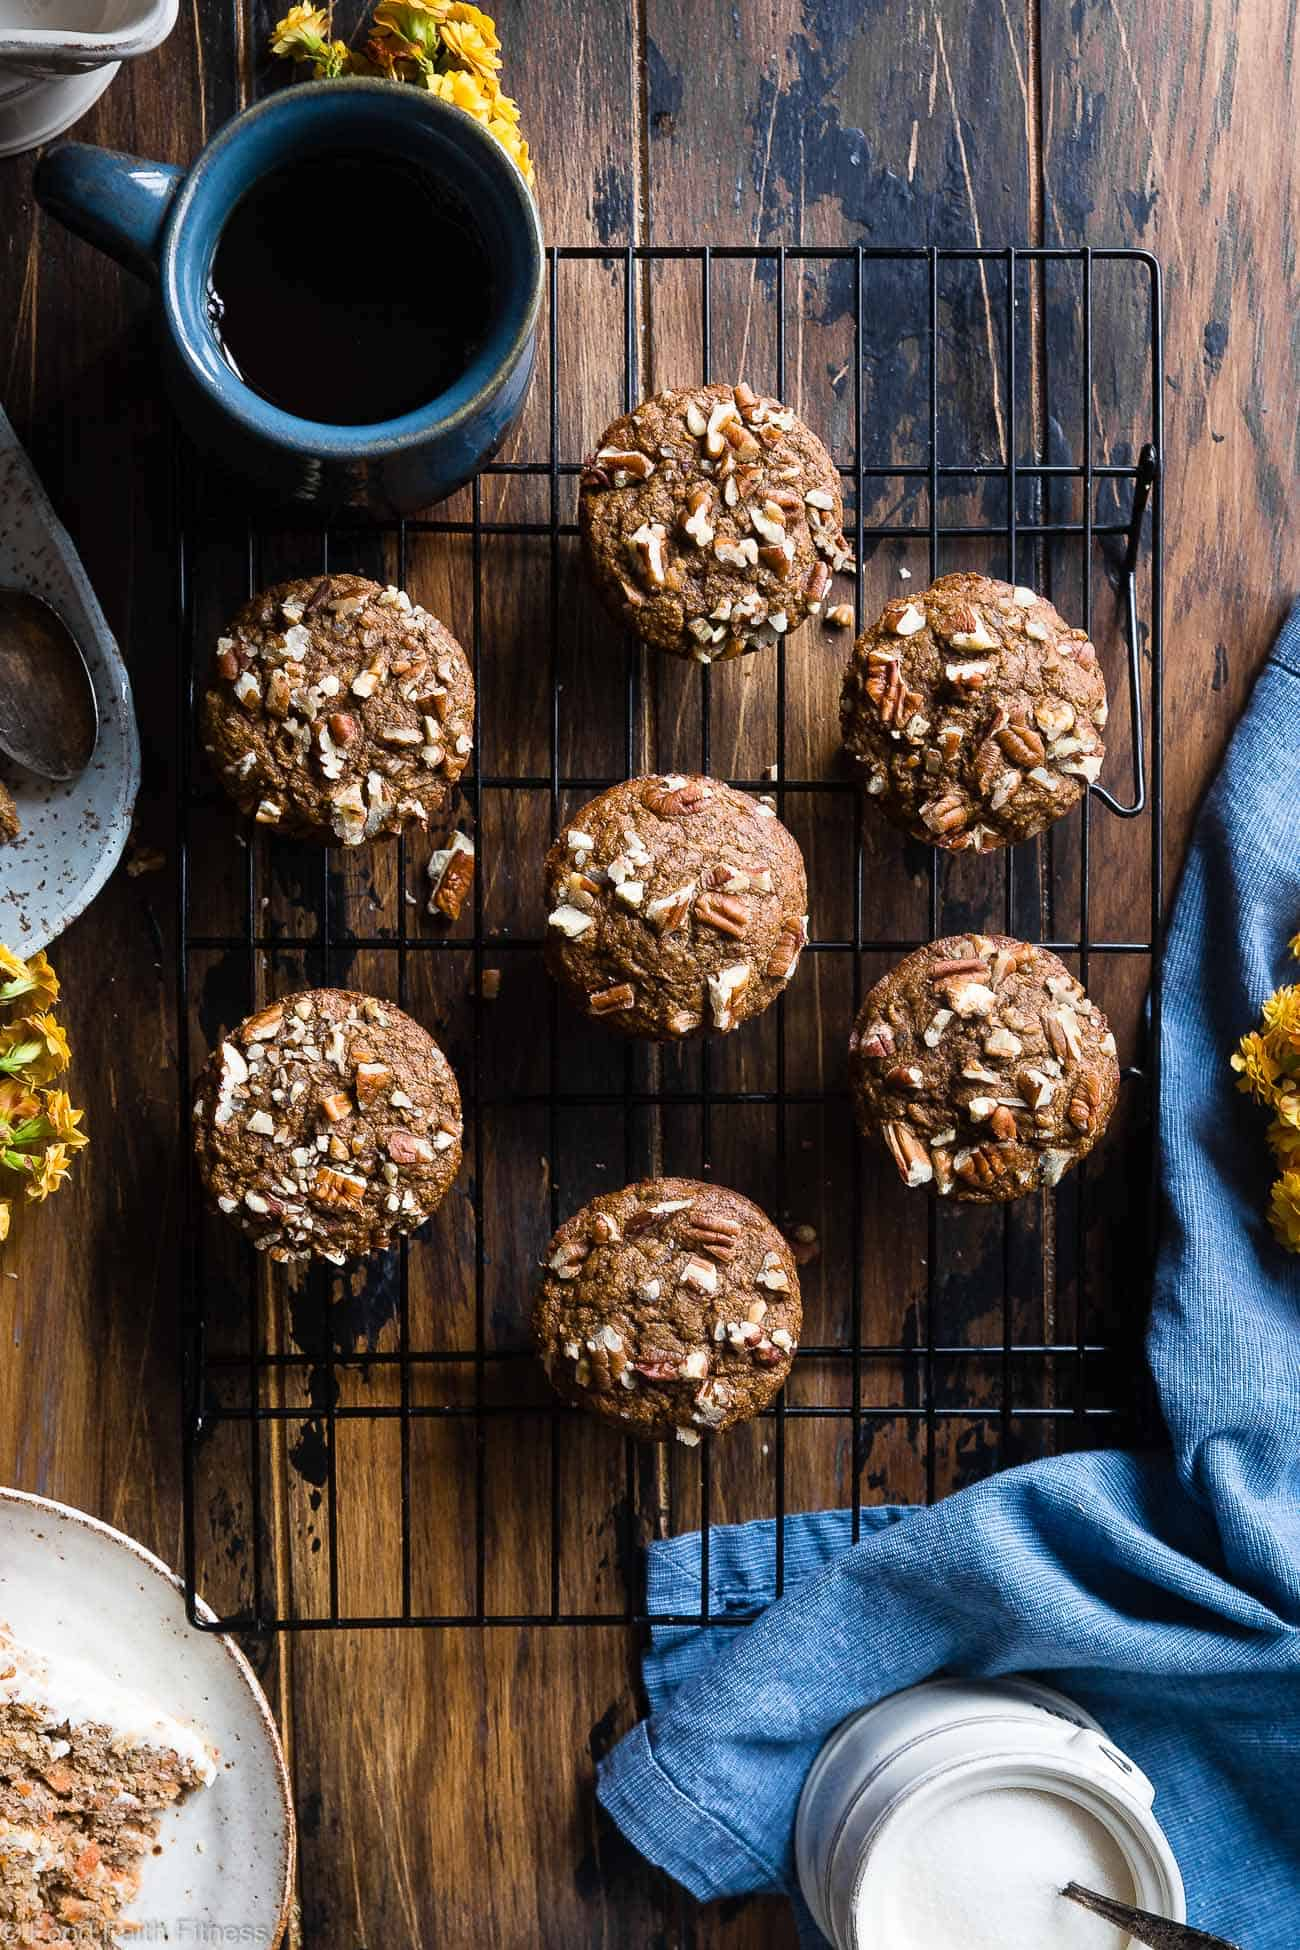 Easy Healthy Gluten Free Carrot Cake Muffins - These easy carrot muffins arequick, simple and made from pantry-essential ingredients! Perfect for a quick breakfast or snack and use Greek yogurt instead of oil! | #Foodfaithfitness | #Muffins #Glutenfree #Healthy #Carrotcake #Greekyogurt